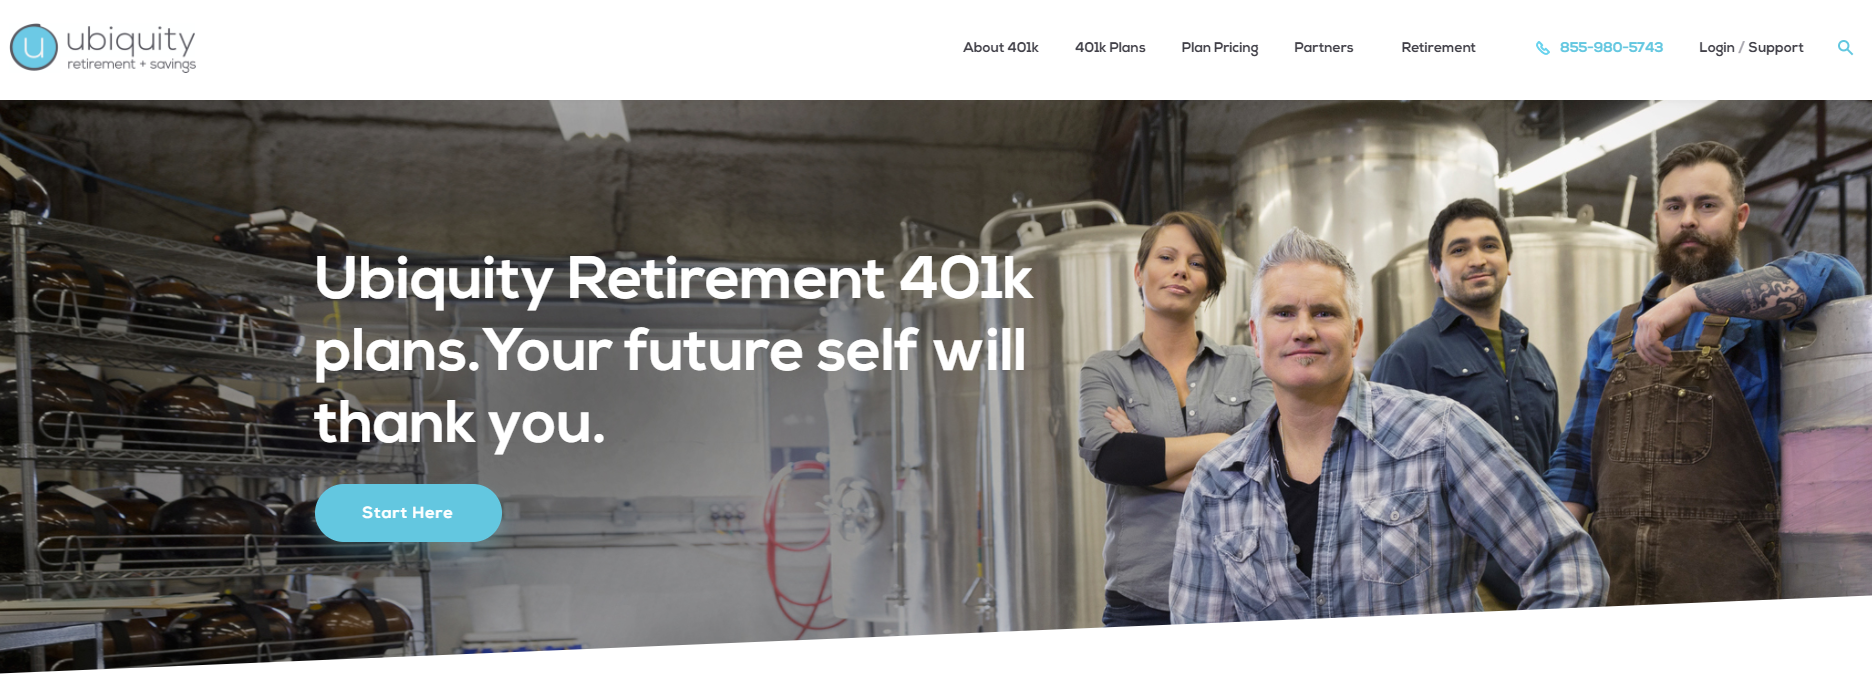 Ubiquity Retirement + Savings